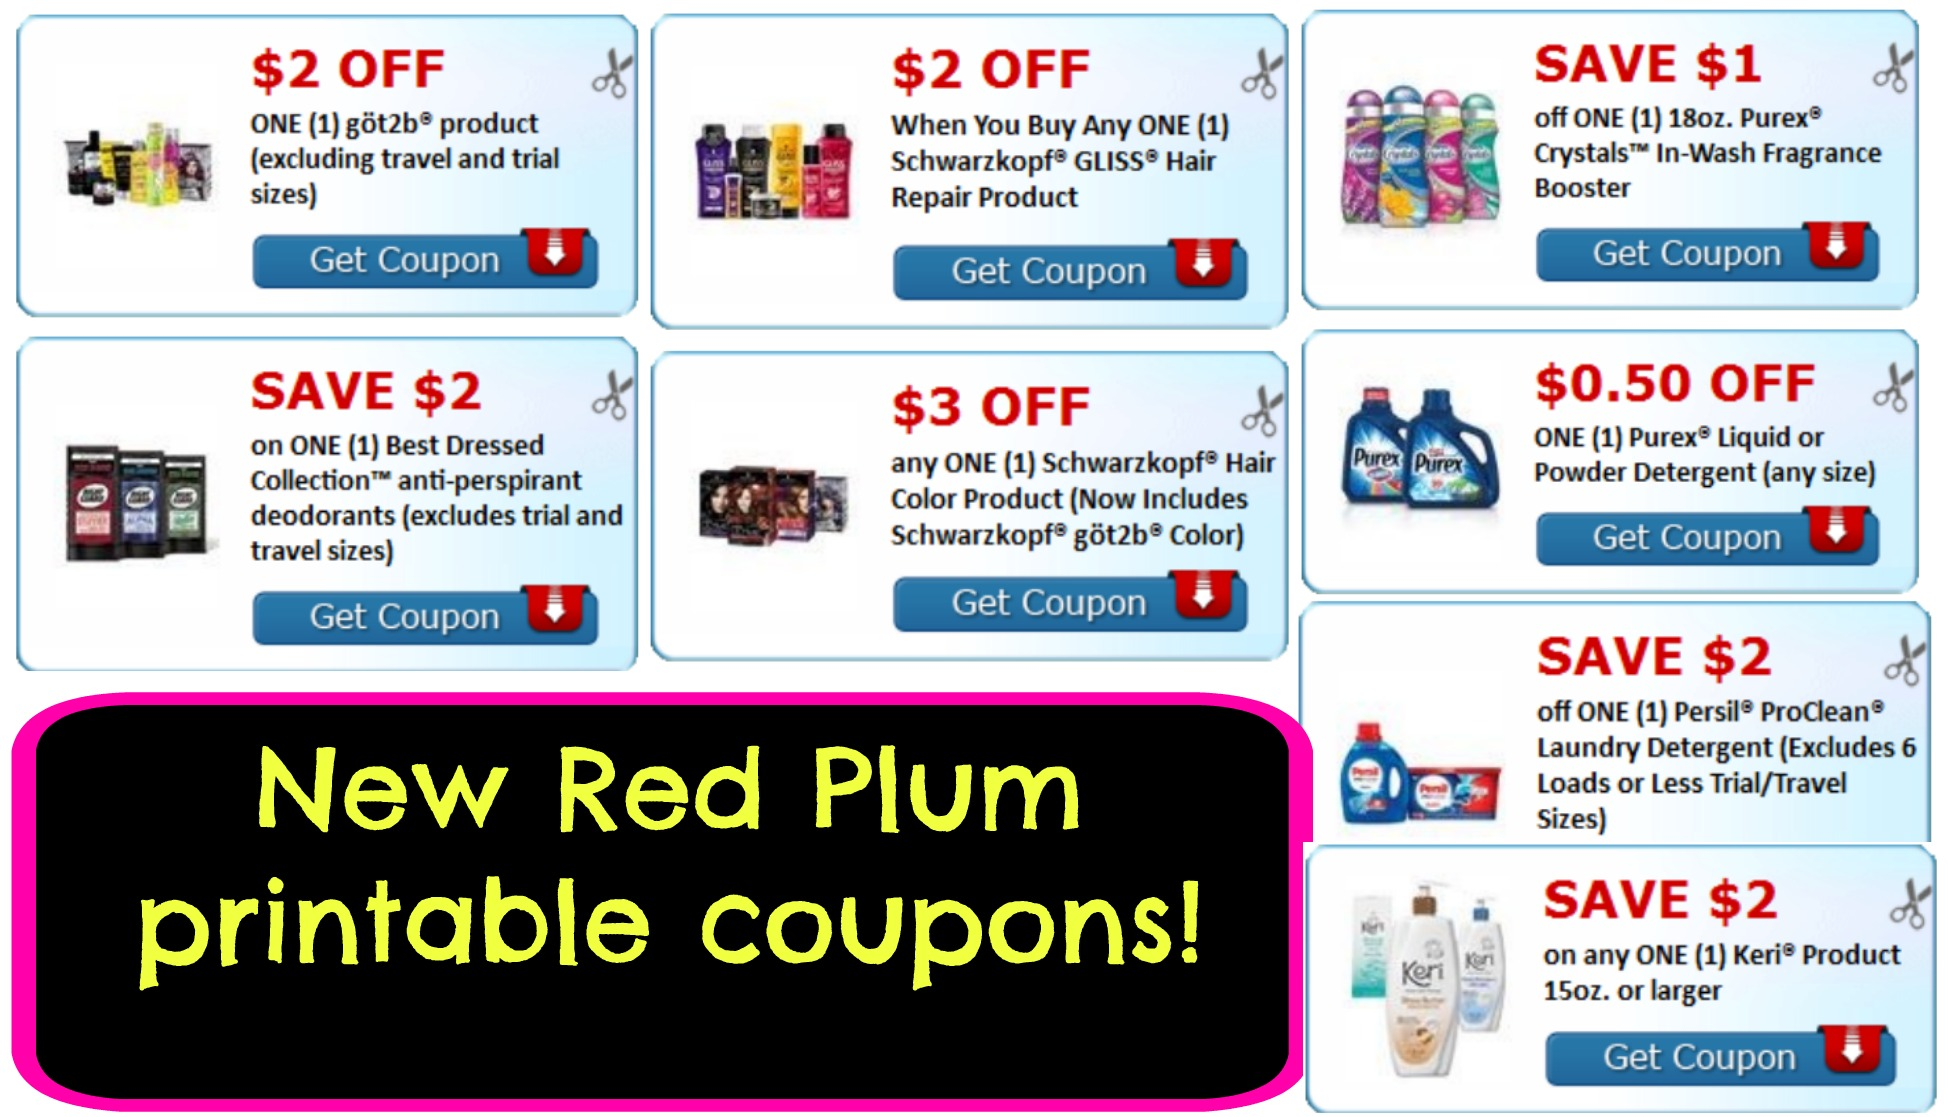 new red plum printable coupons couponing united states my publix coupon buddy